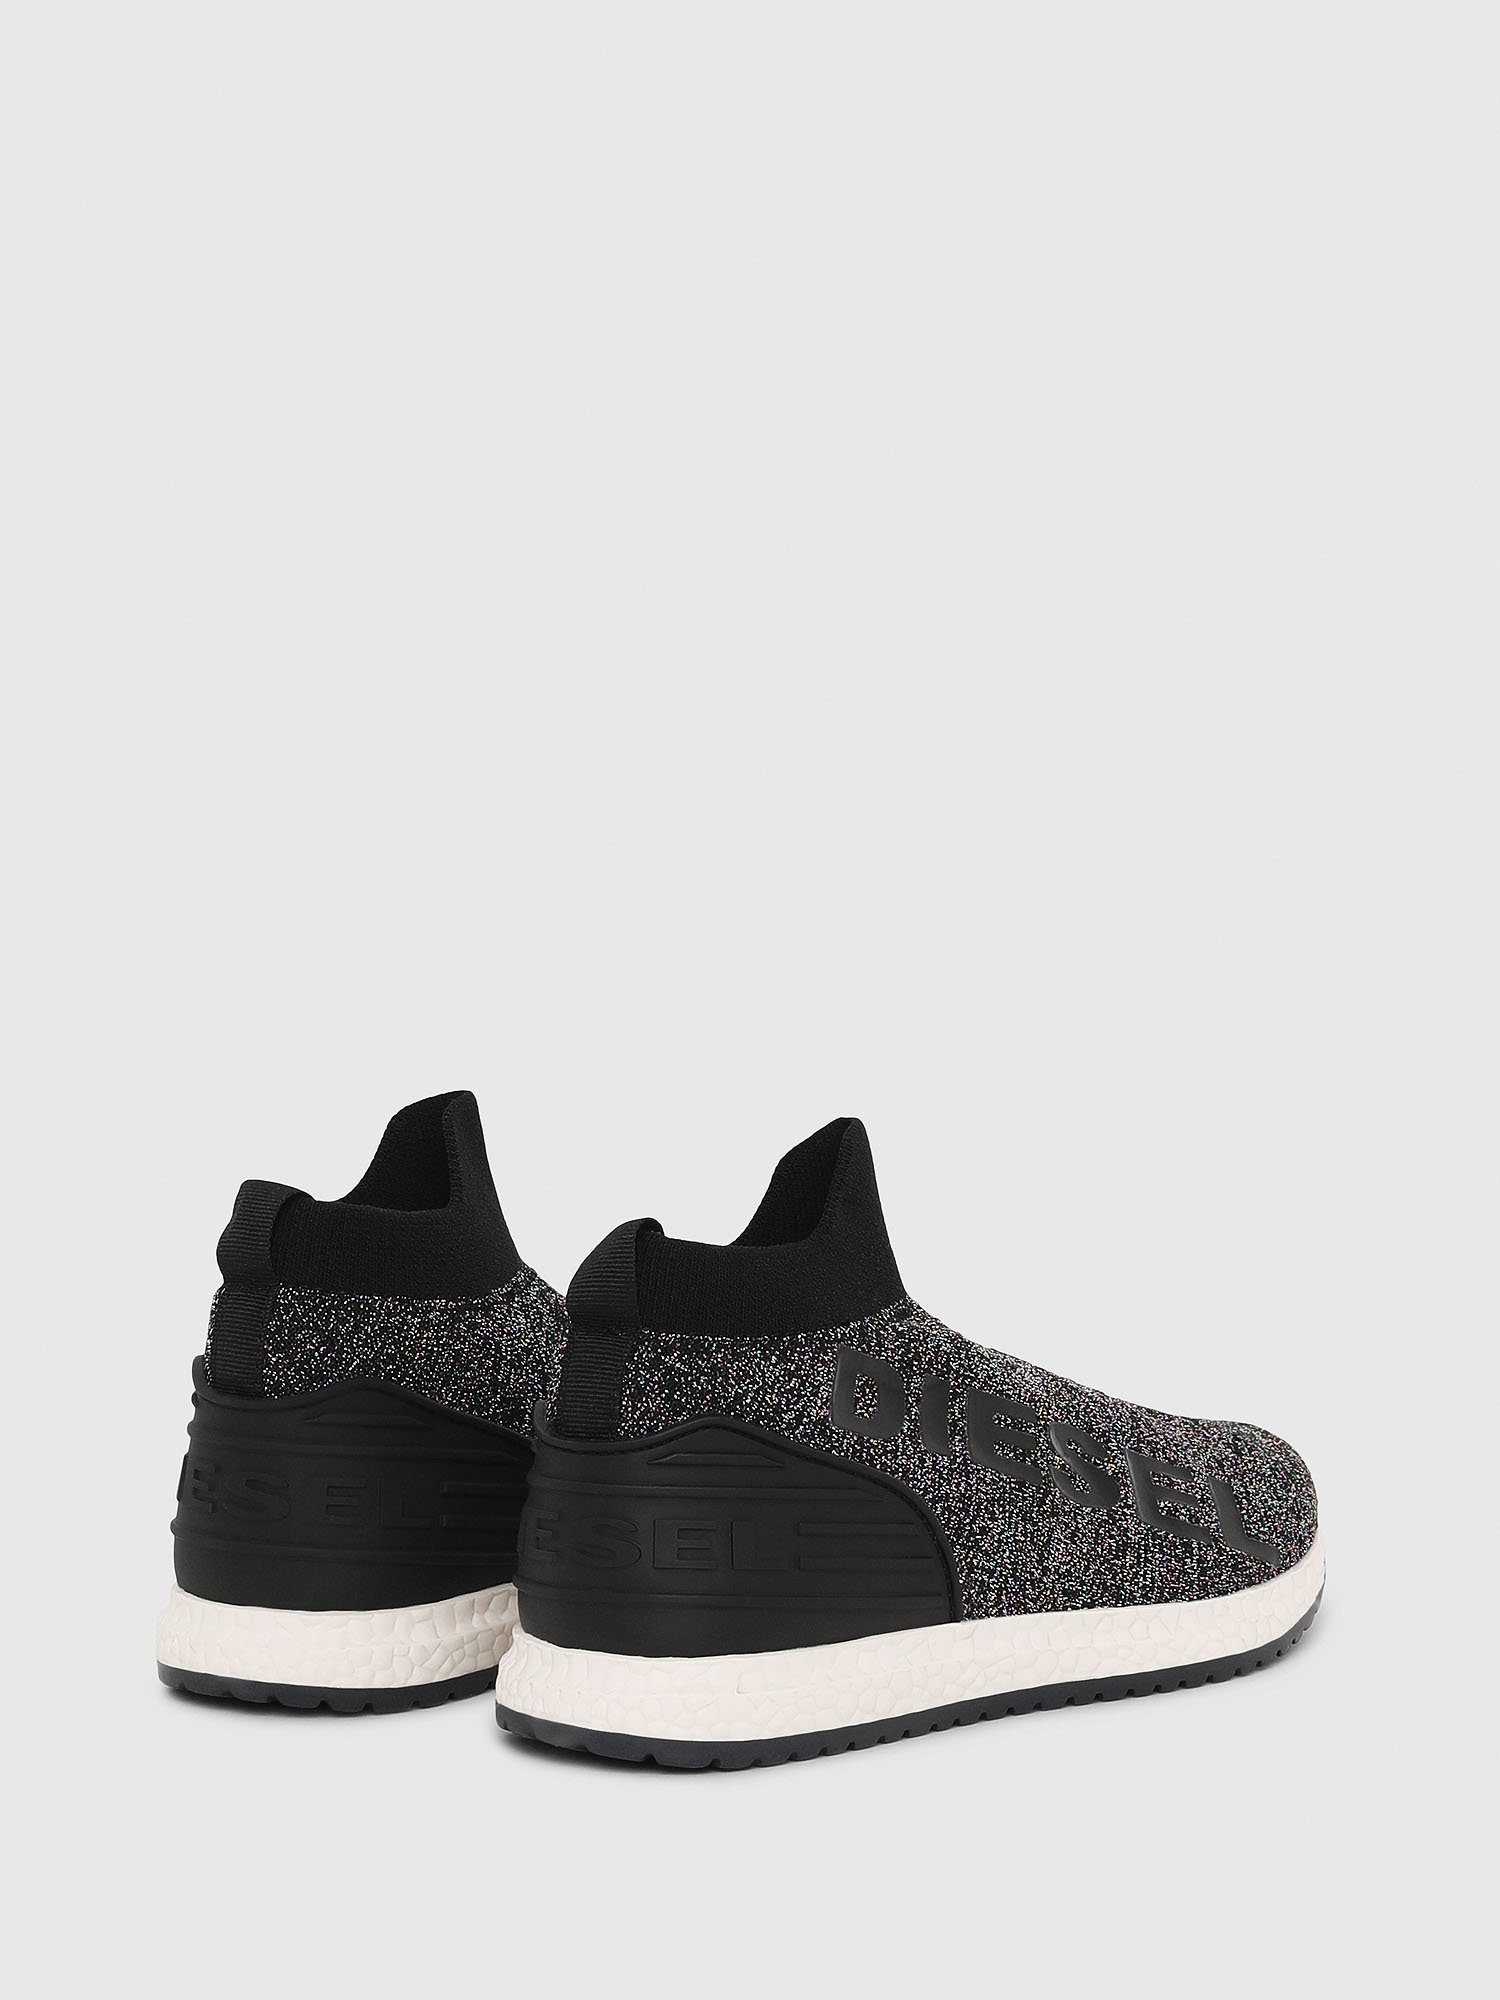 Diesel - SLIP ON 03 LOW SOCK,  - Footwear - Image 3